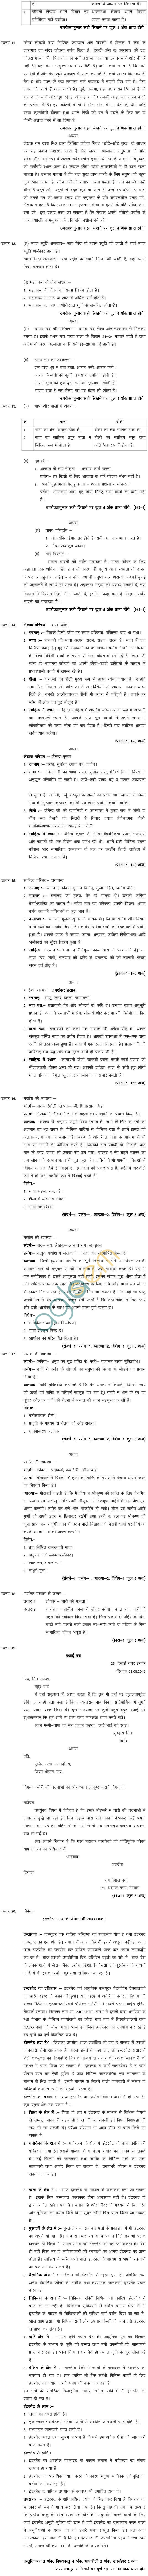 MP BoardClass XII Hindi Special Model Questions & Answers -Set 4